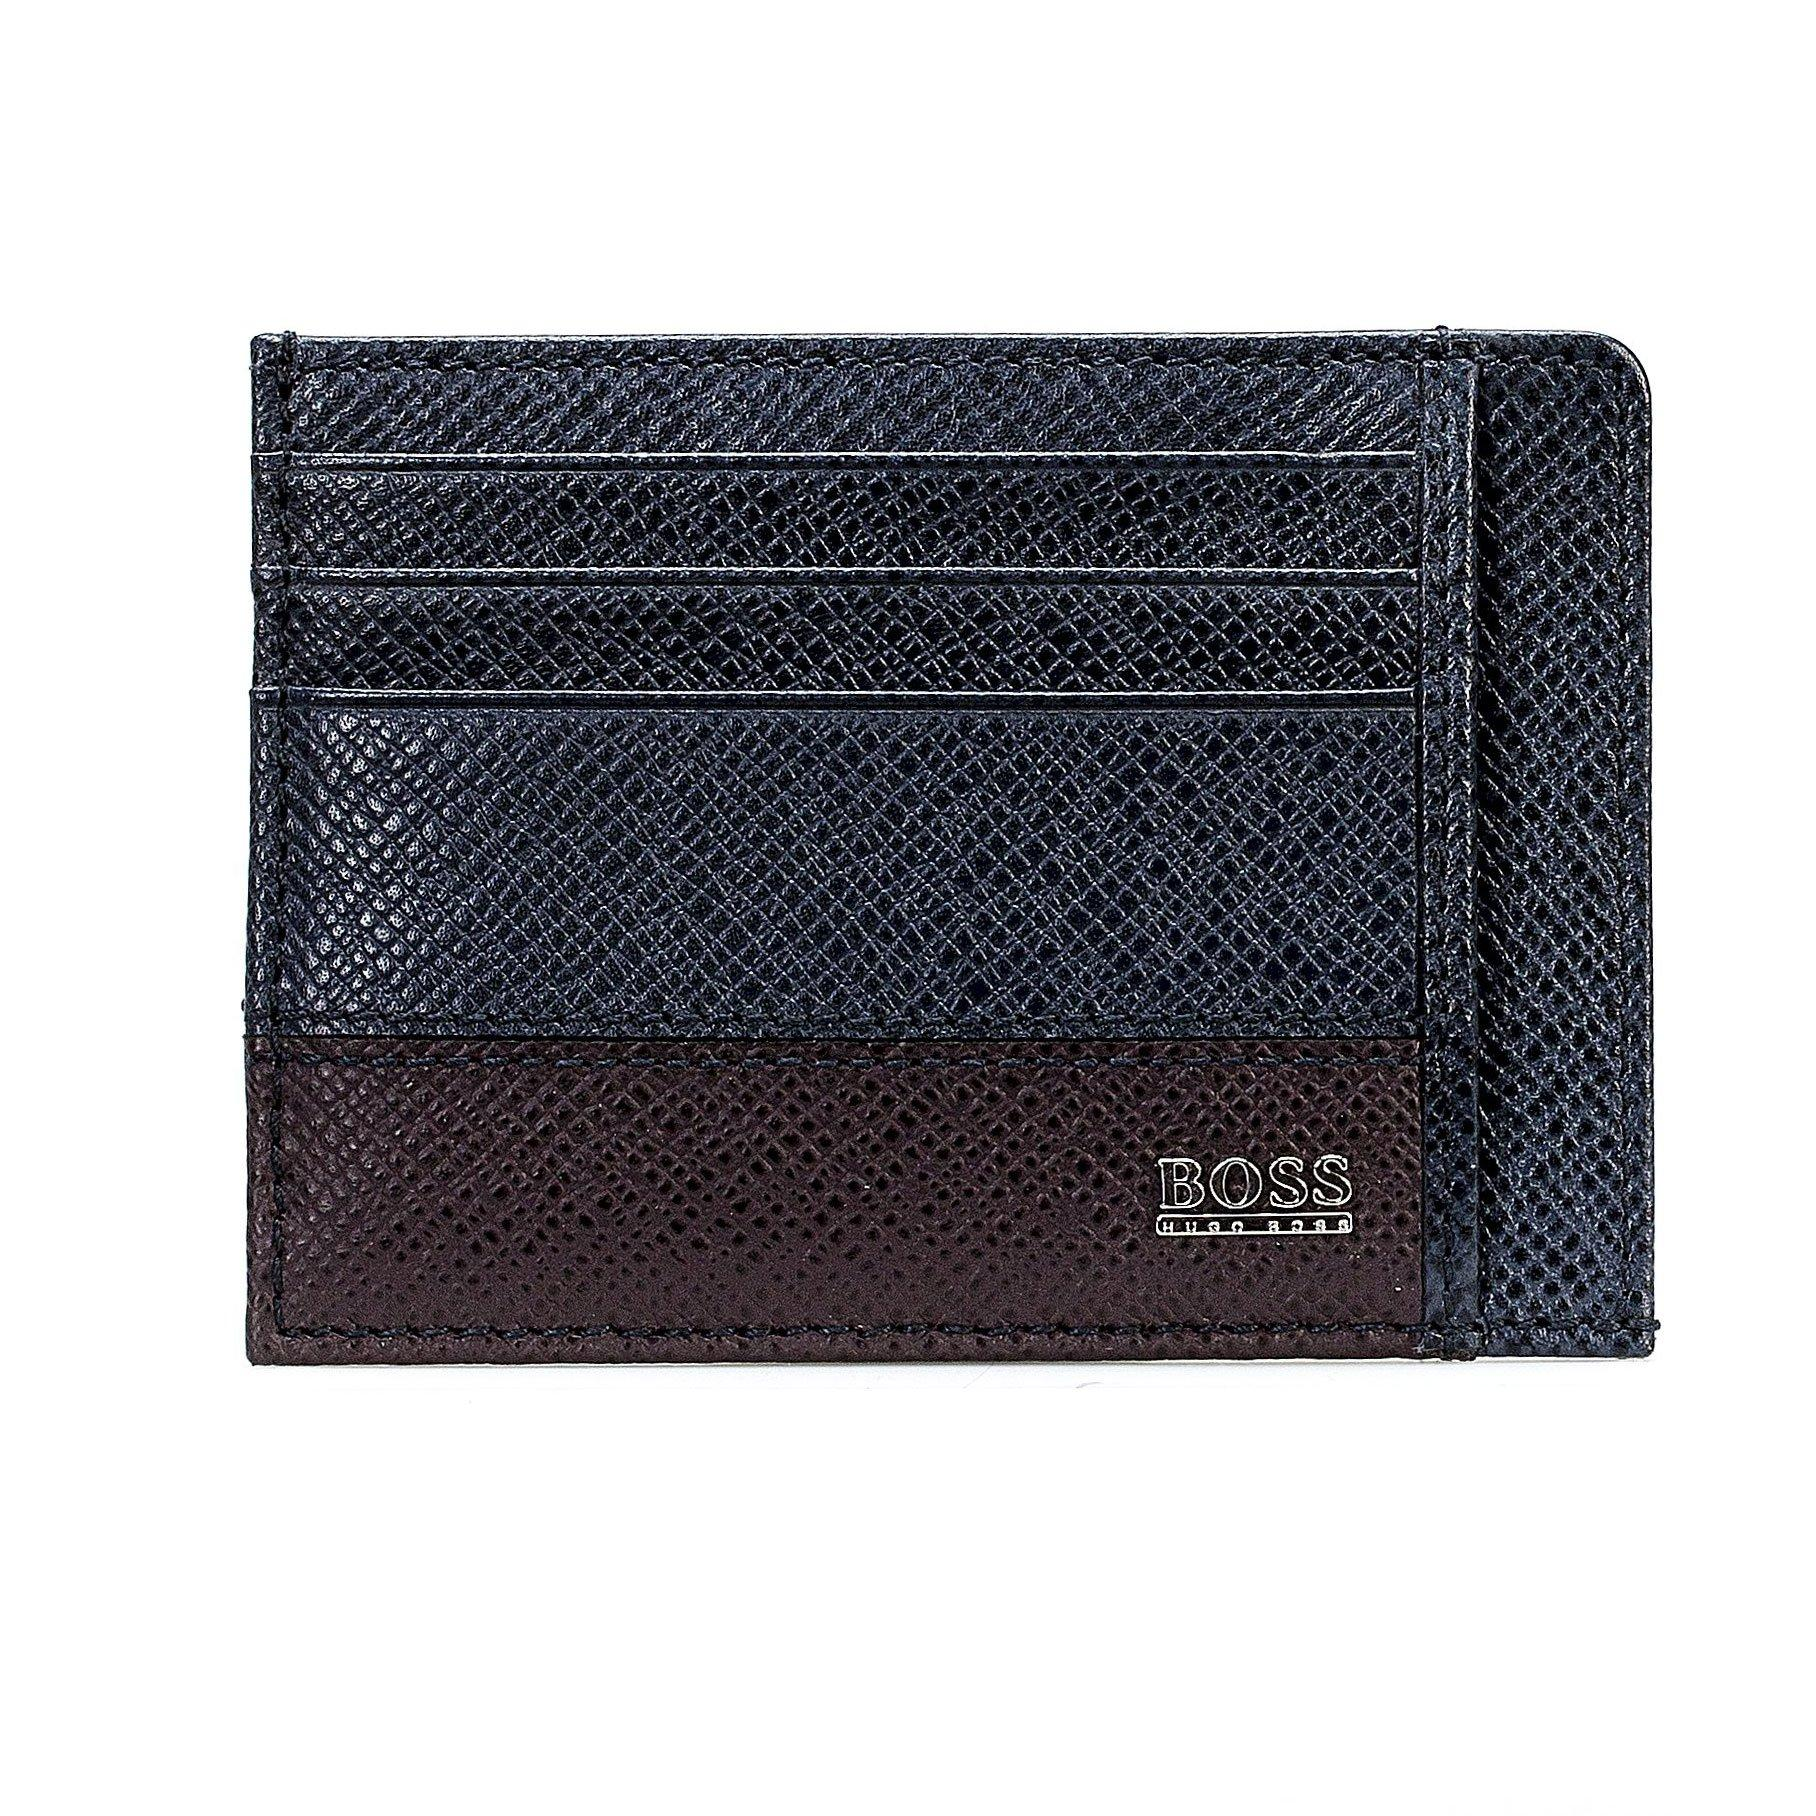 BOSS Navy Leather Wallet